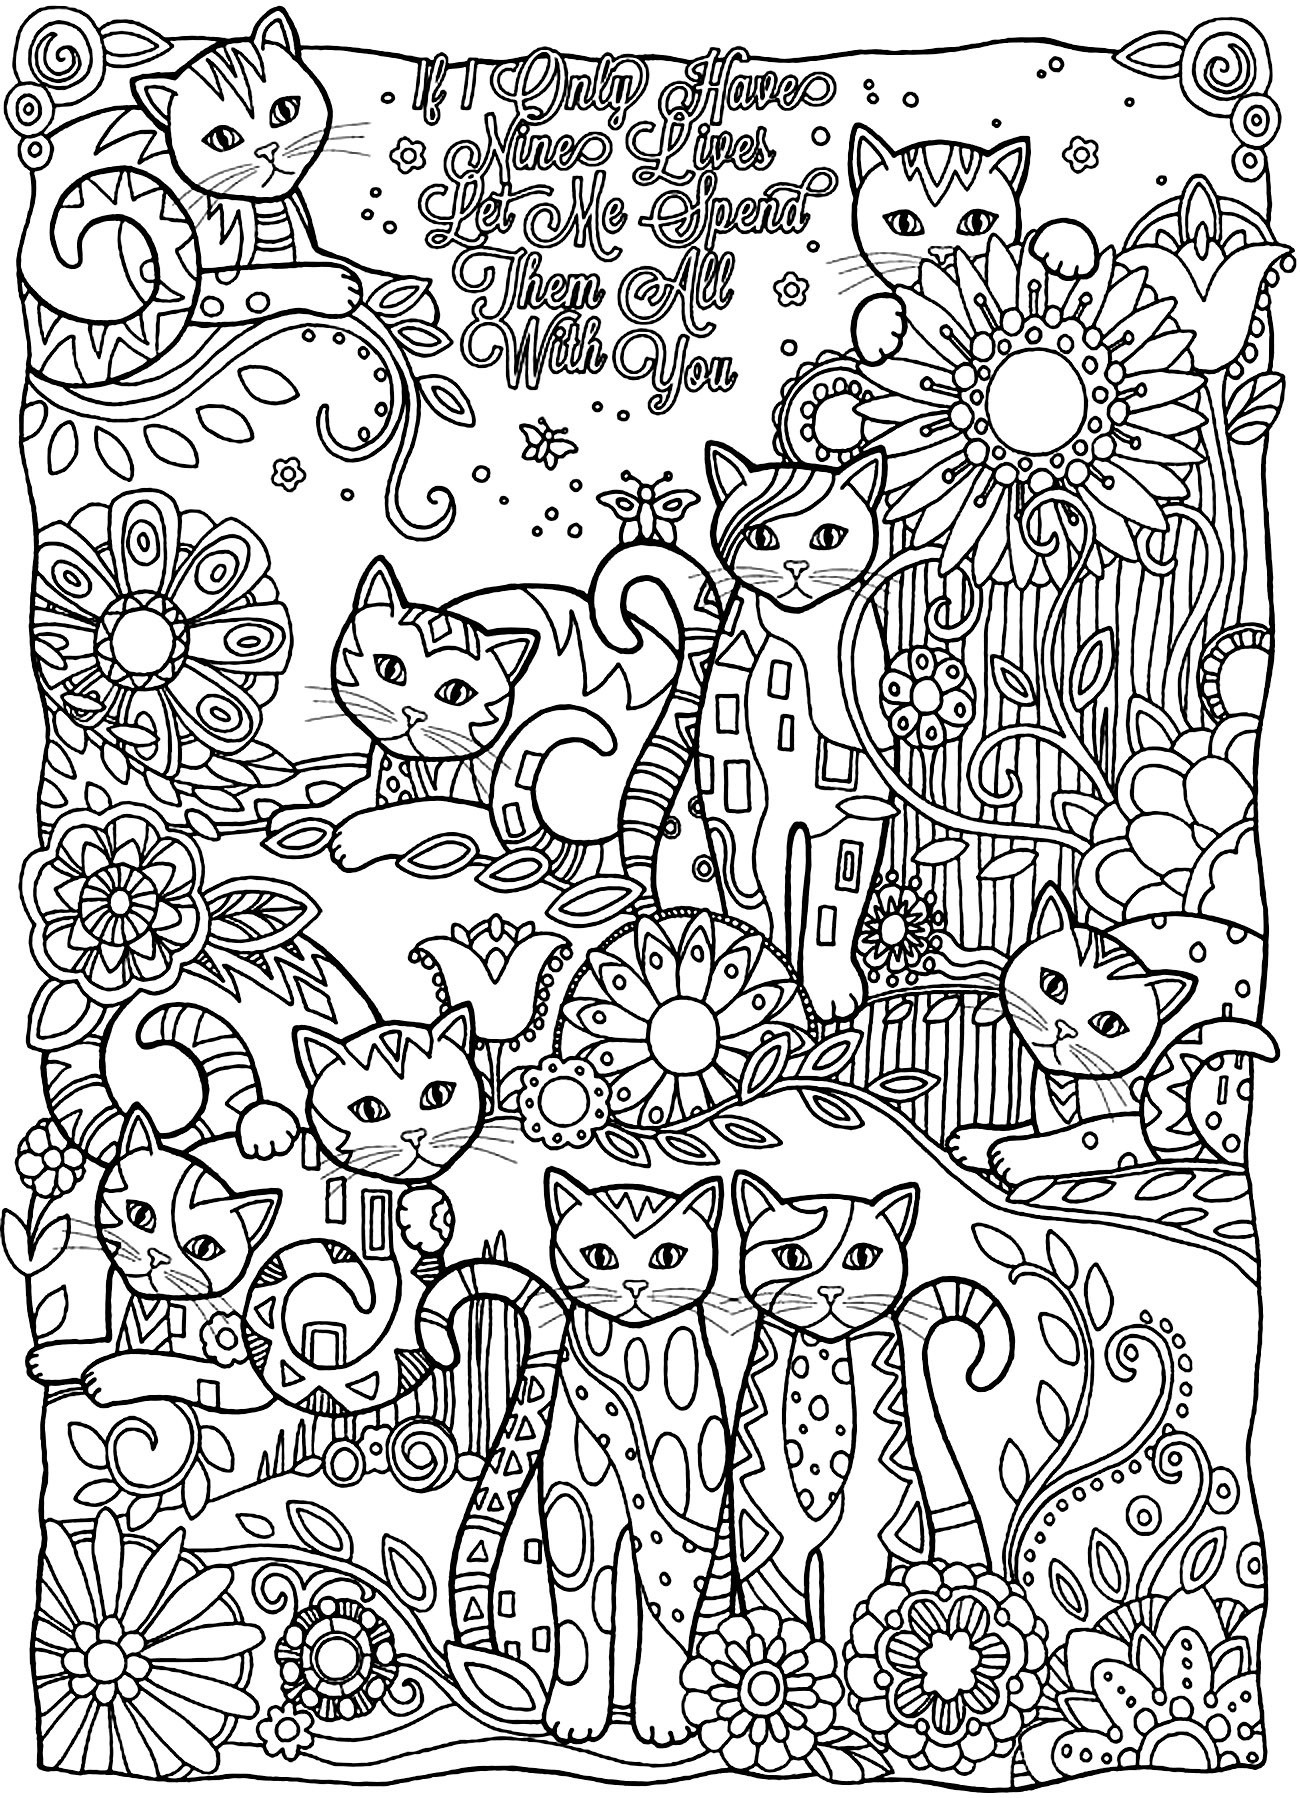 Prodigal son Coloring Pages  Printable 2e - Save it to your computer